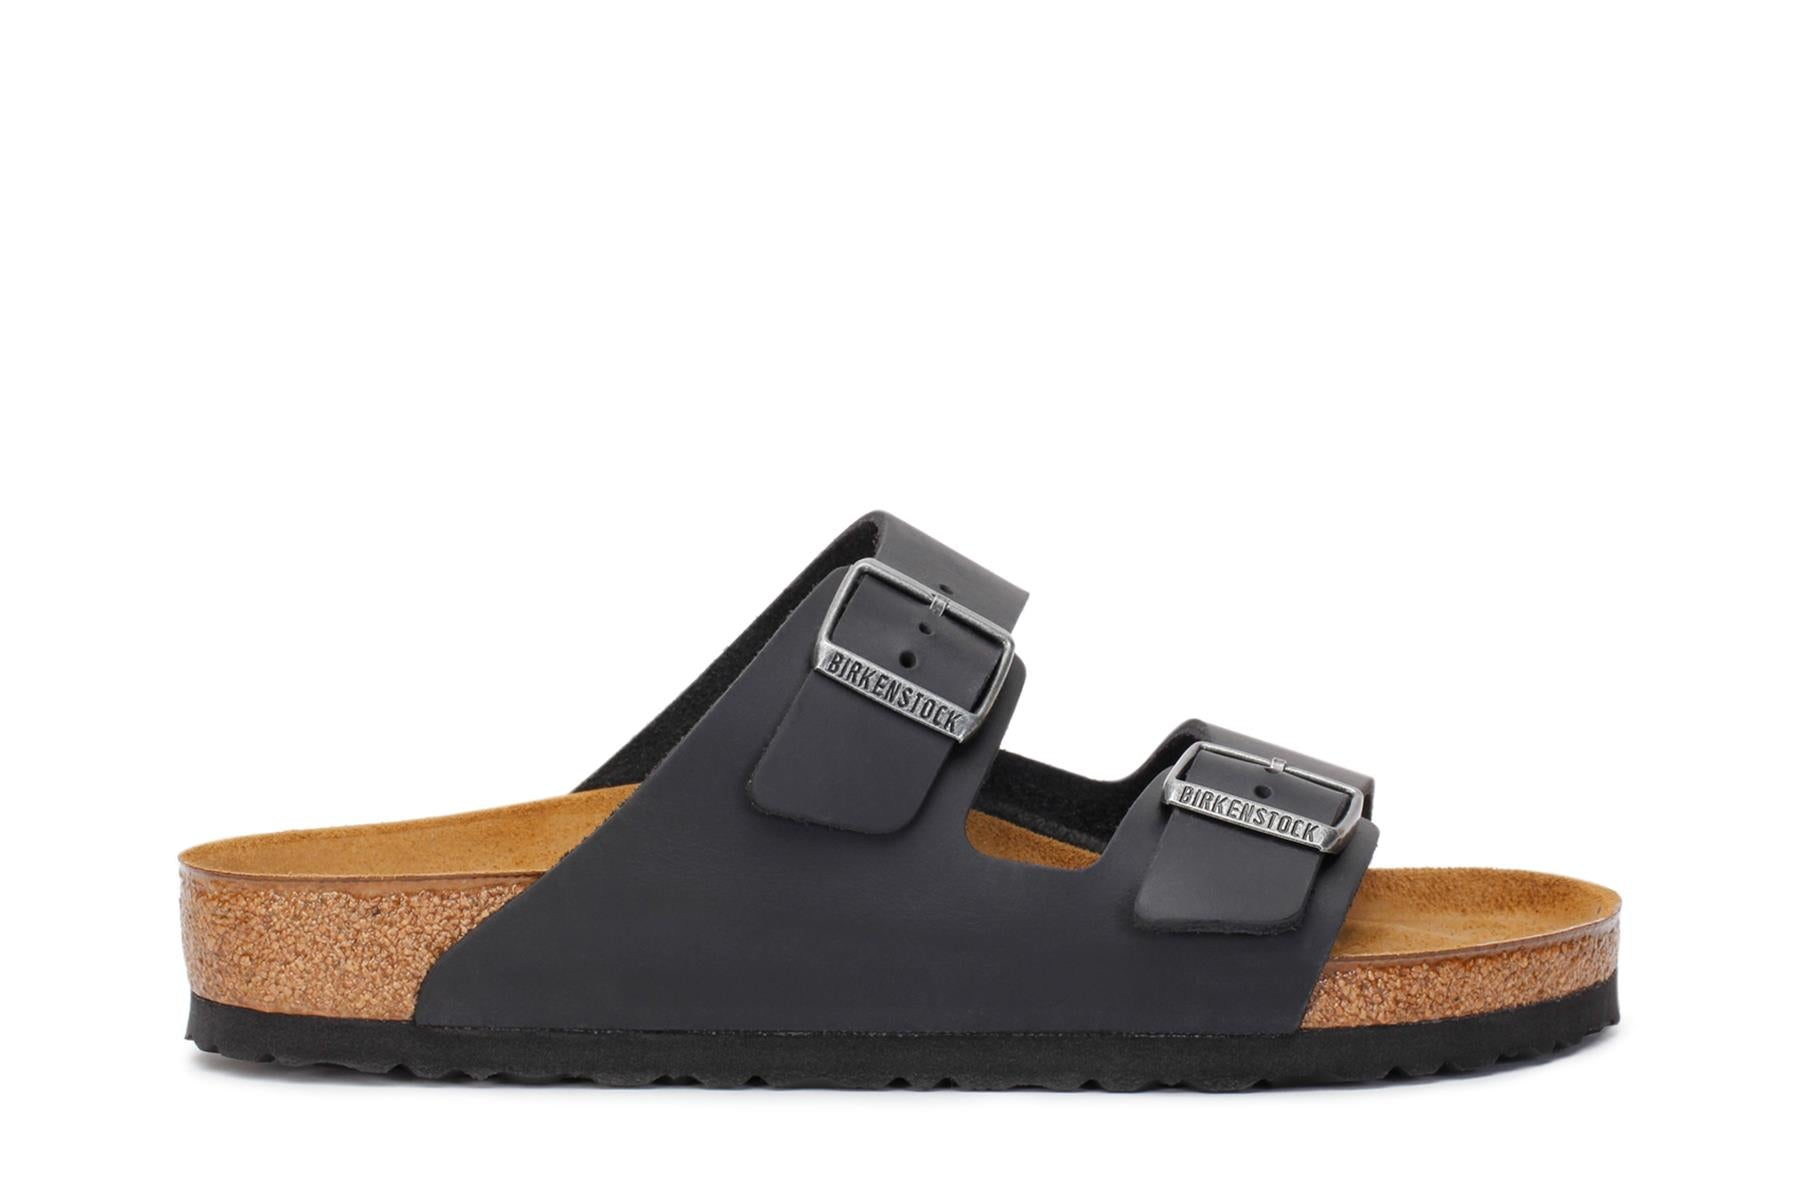 birkenstock-mens-slide-sandals-arizona-bs-black-oiled-leather-552111-main